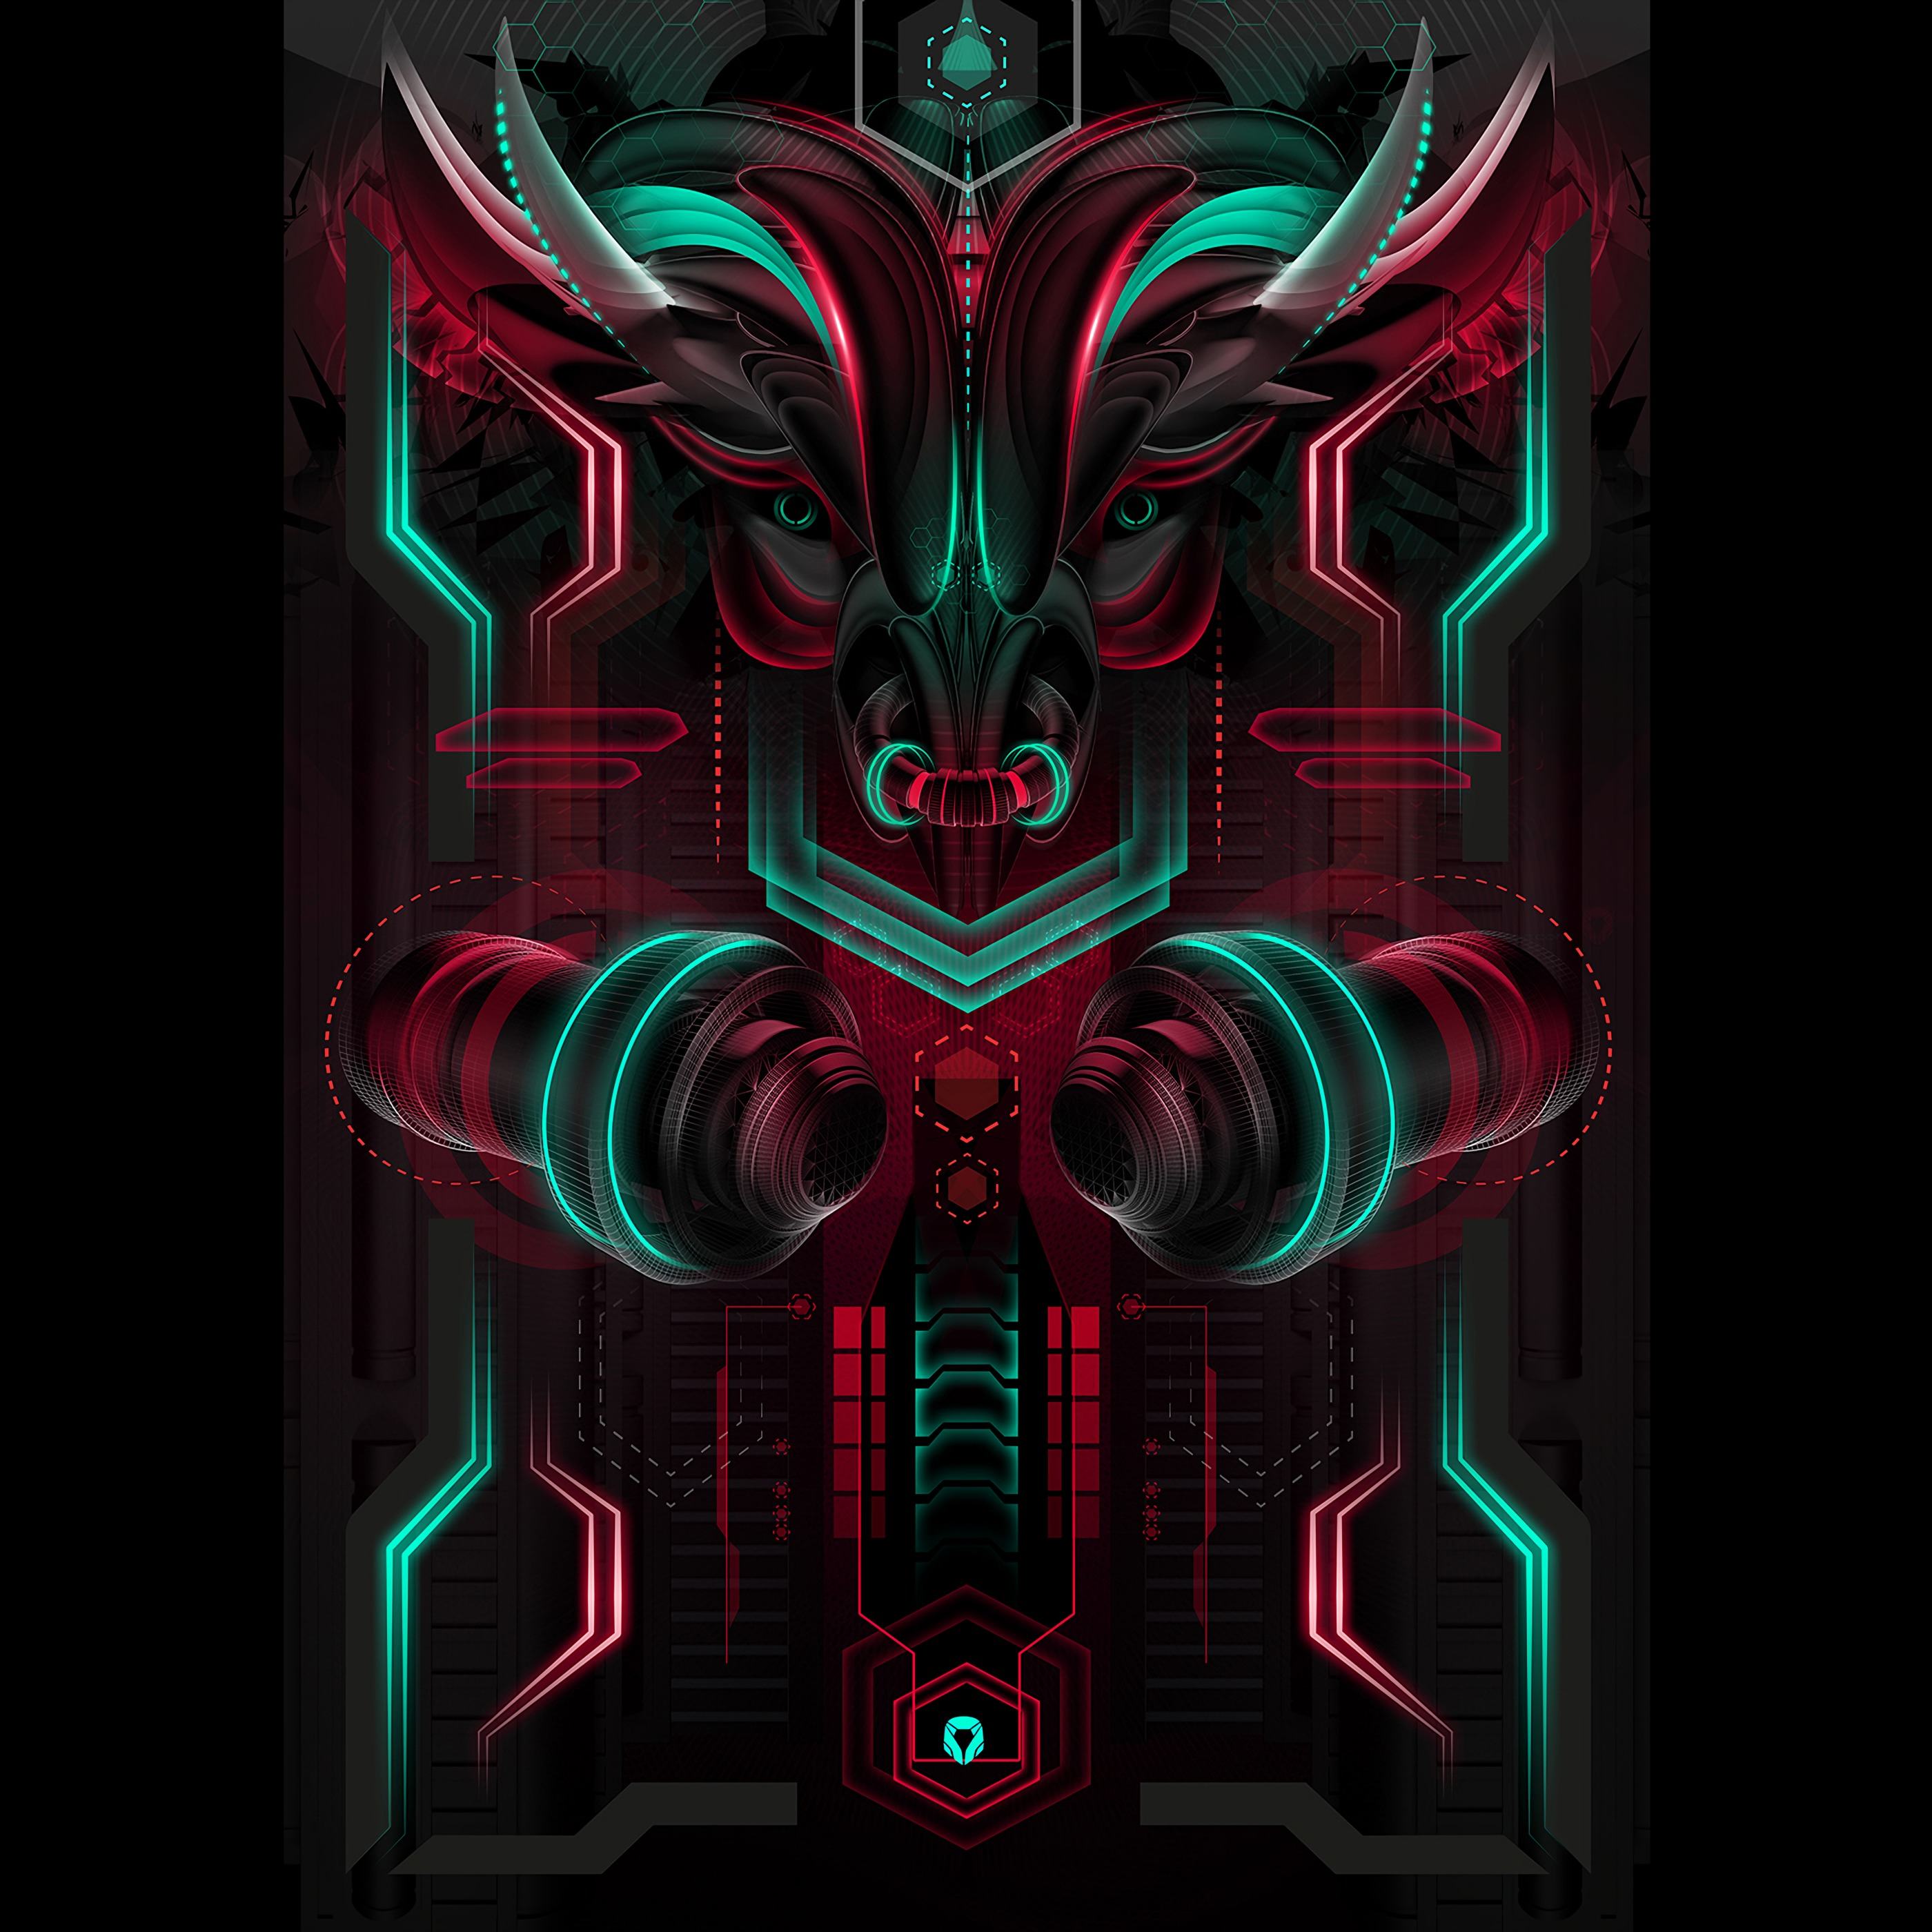 110557 download wallpaper Bull, Neon, Scheme, Art screensavers and pictures for free